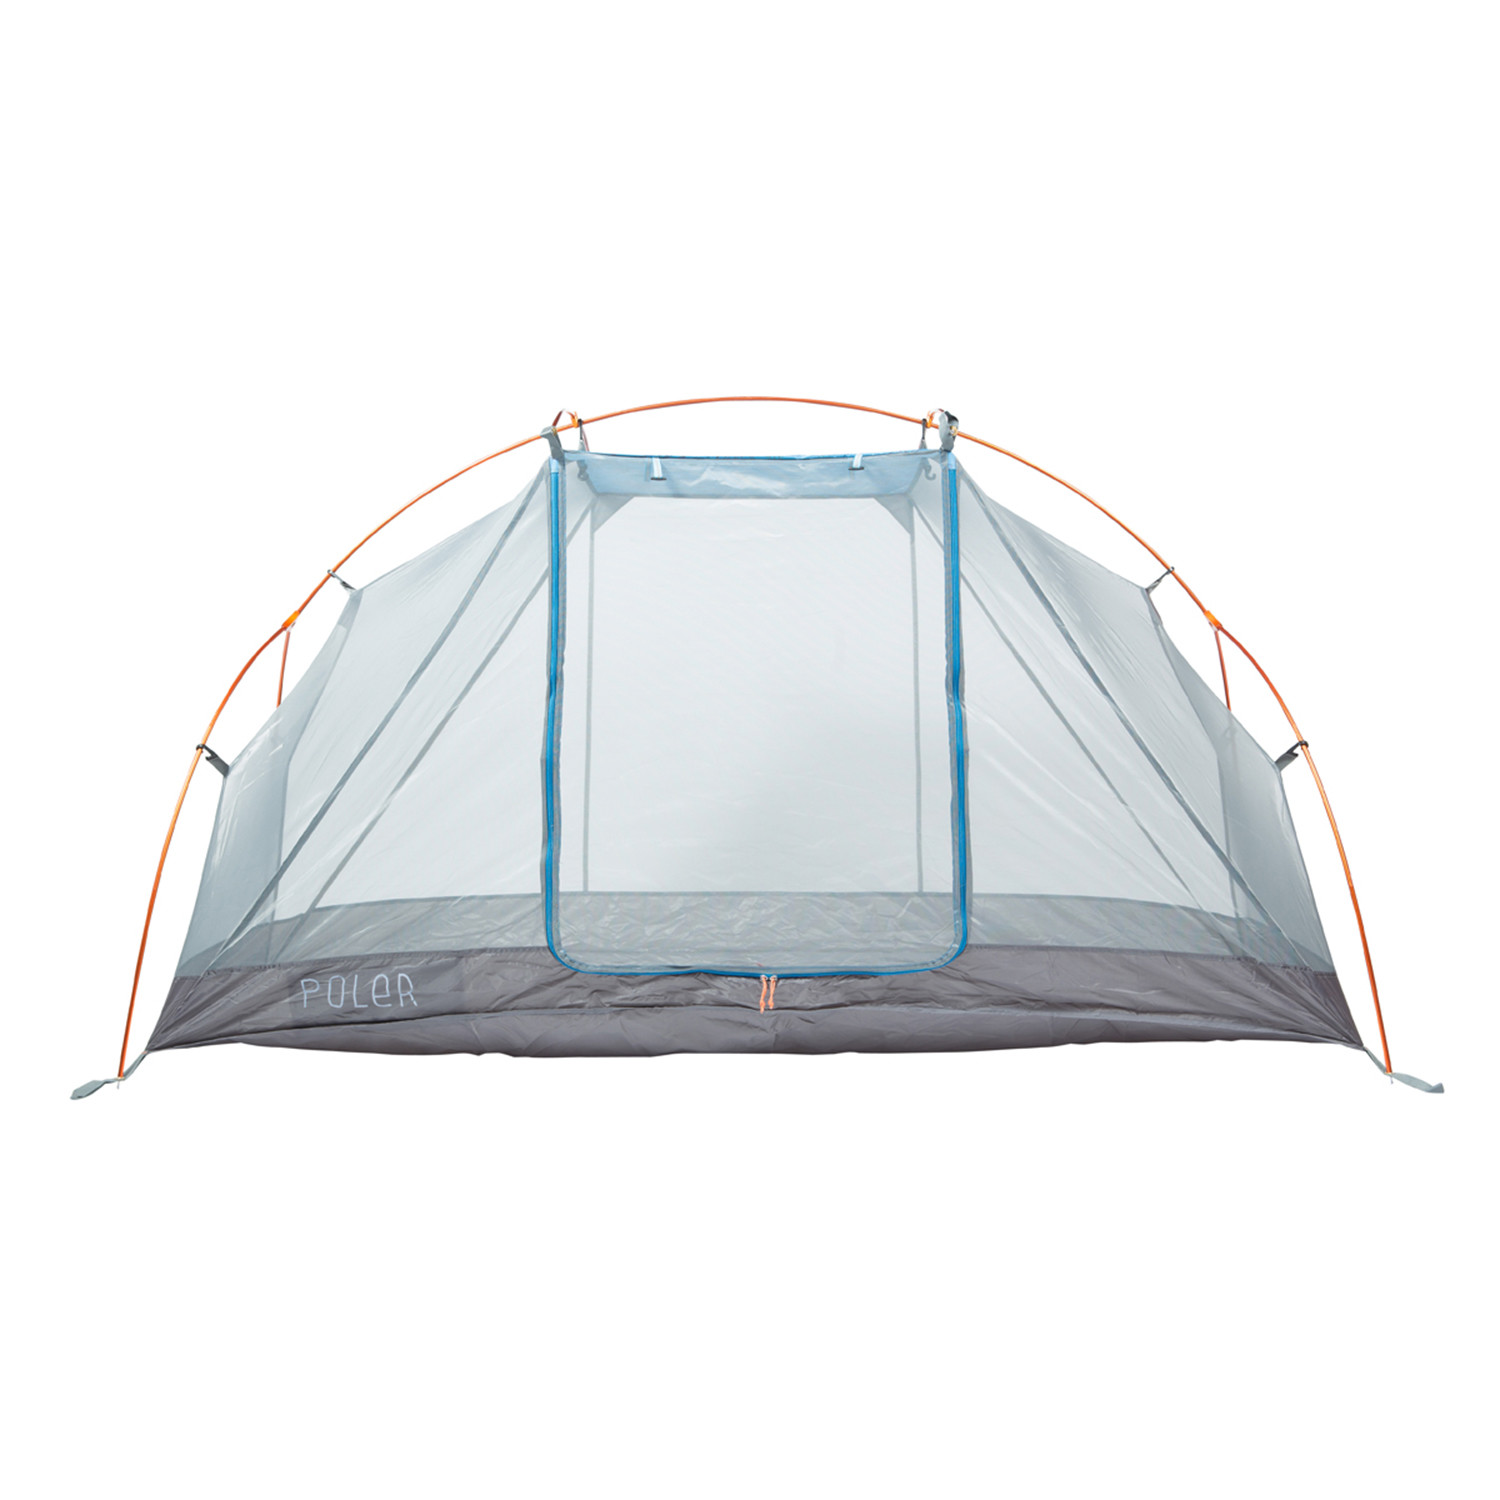 Brotanical 2 Man Tent  sc 1 st  Touch of Modern & Brotanical 2 Man Tent - Poler Stuff - Touch of Modern